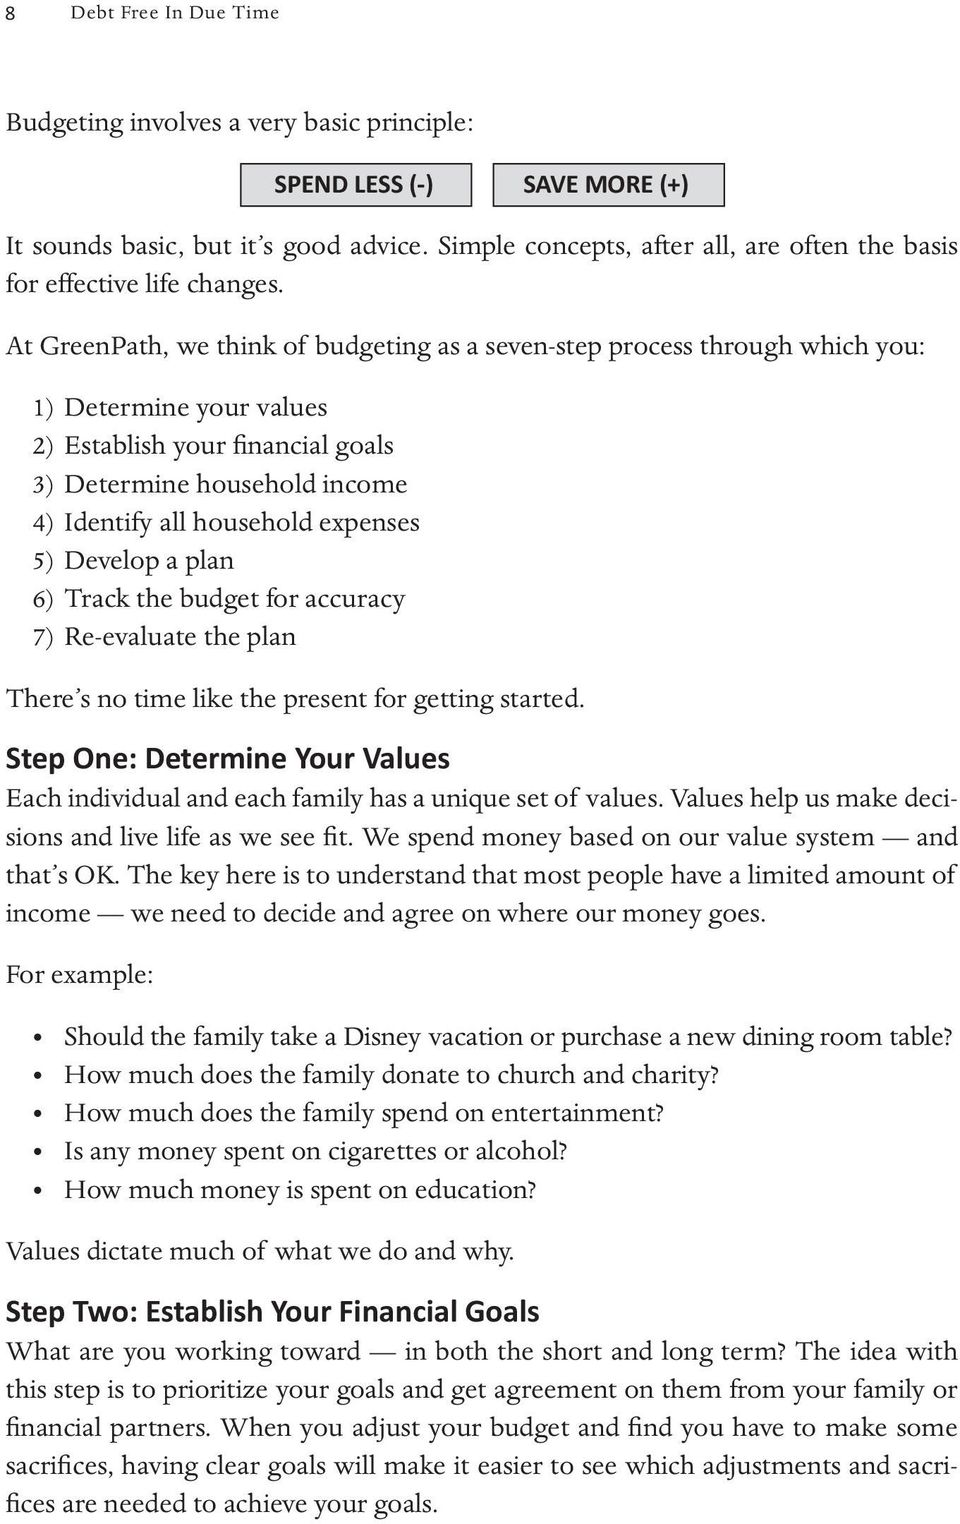 At GreenPath, we think of budgeting as a seven-step process through which you: 1) Determine your values 2) Establish your financial goals 3) Determine household income 4) Identify all household